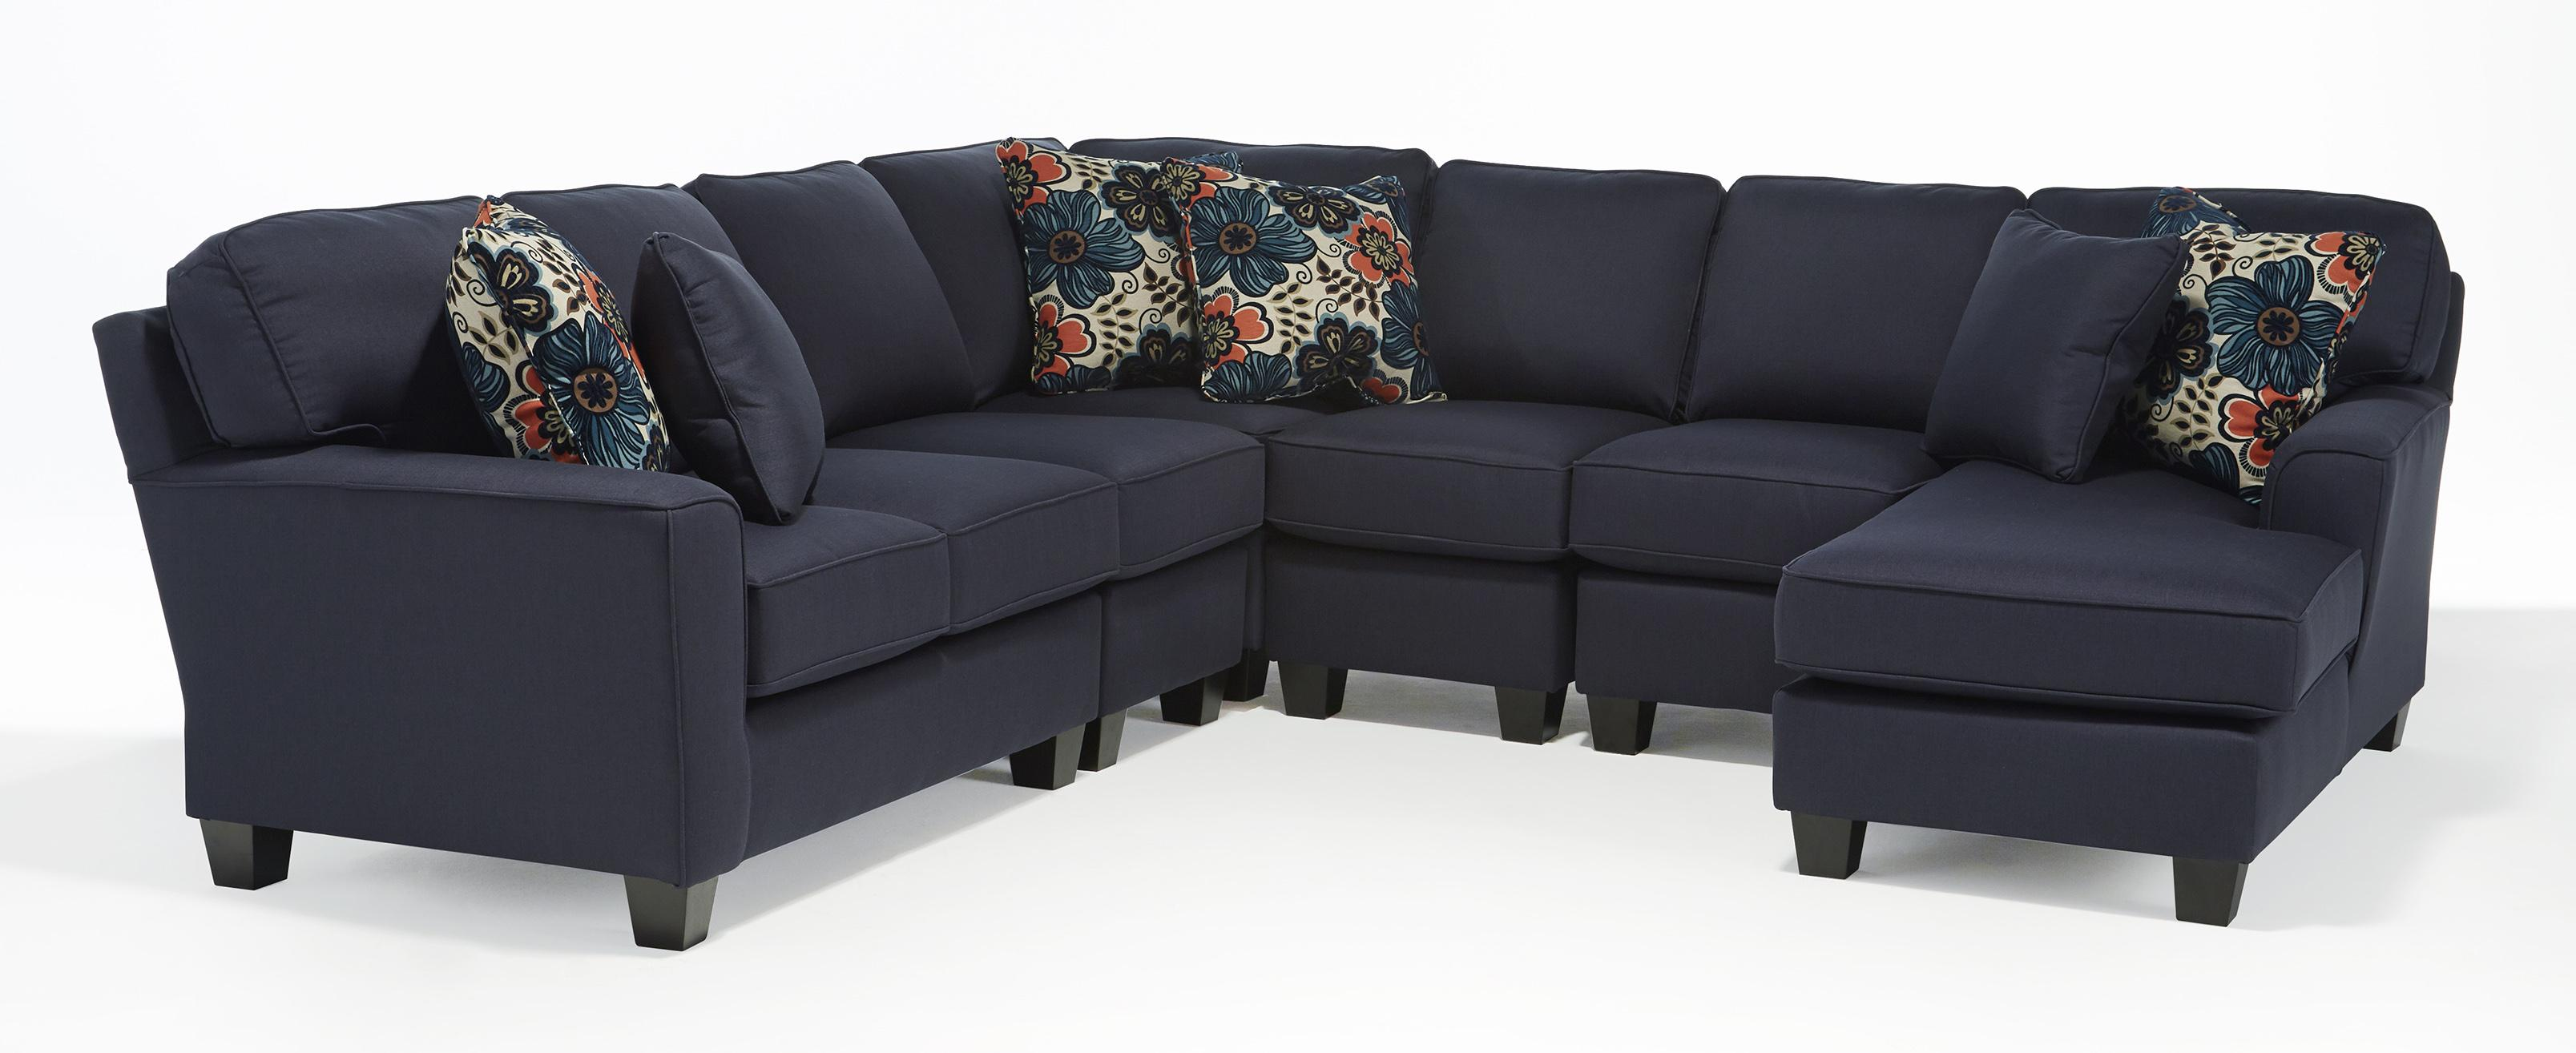 Genial Five Piece Customizable Sectional Sofa With Beveled Arms And Wood Feet